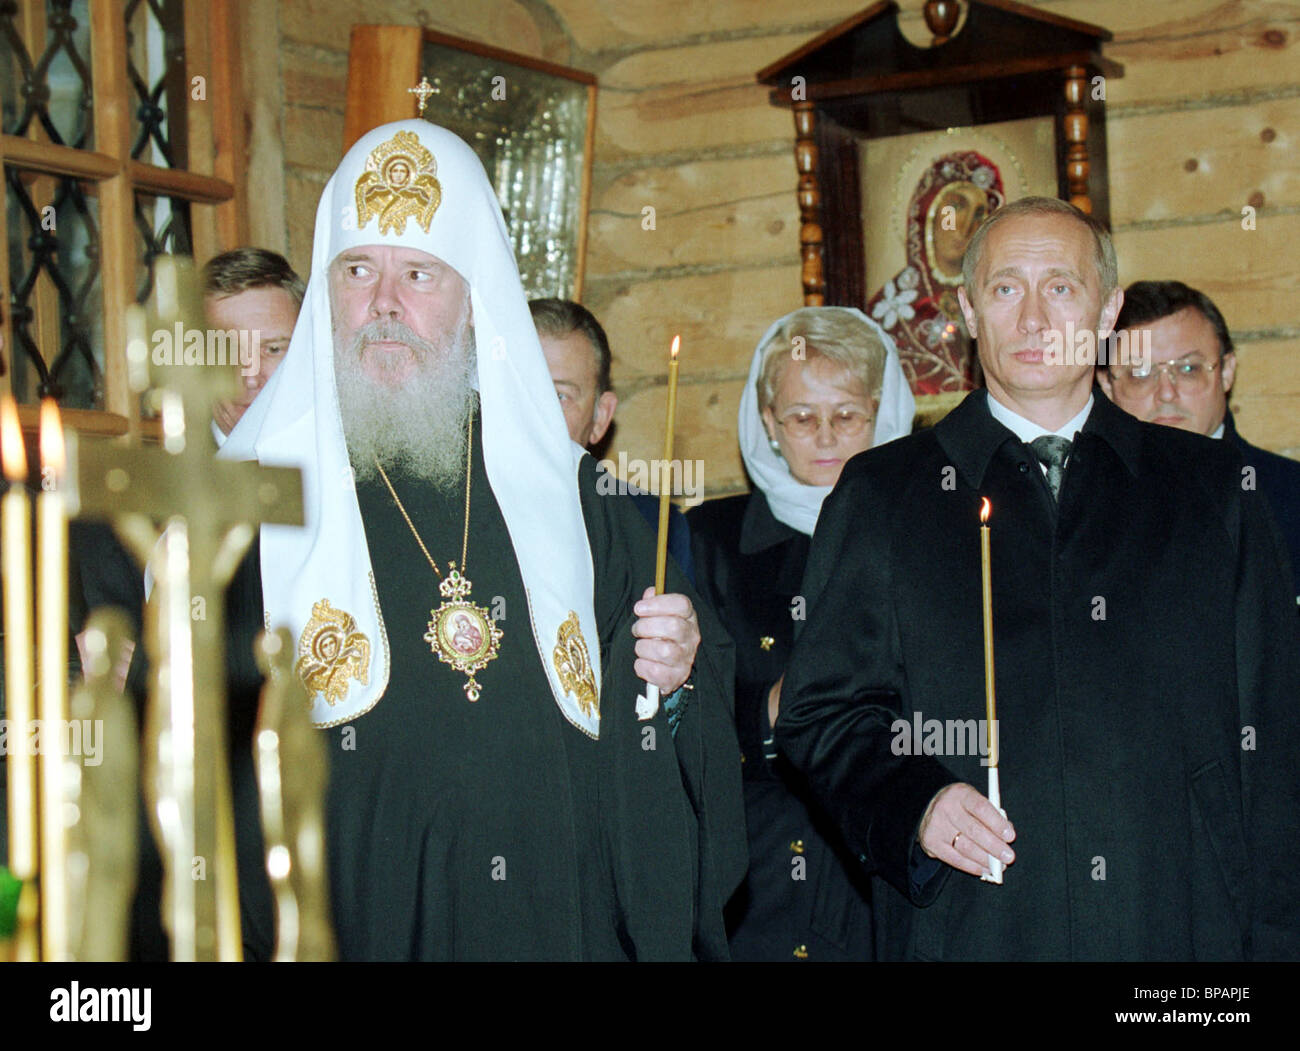 President Vladimir Putin & head of Russian Orthodox Church, Patriarch Alexy of Moscow & All Russia attend - Stock Image